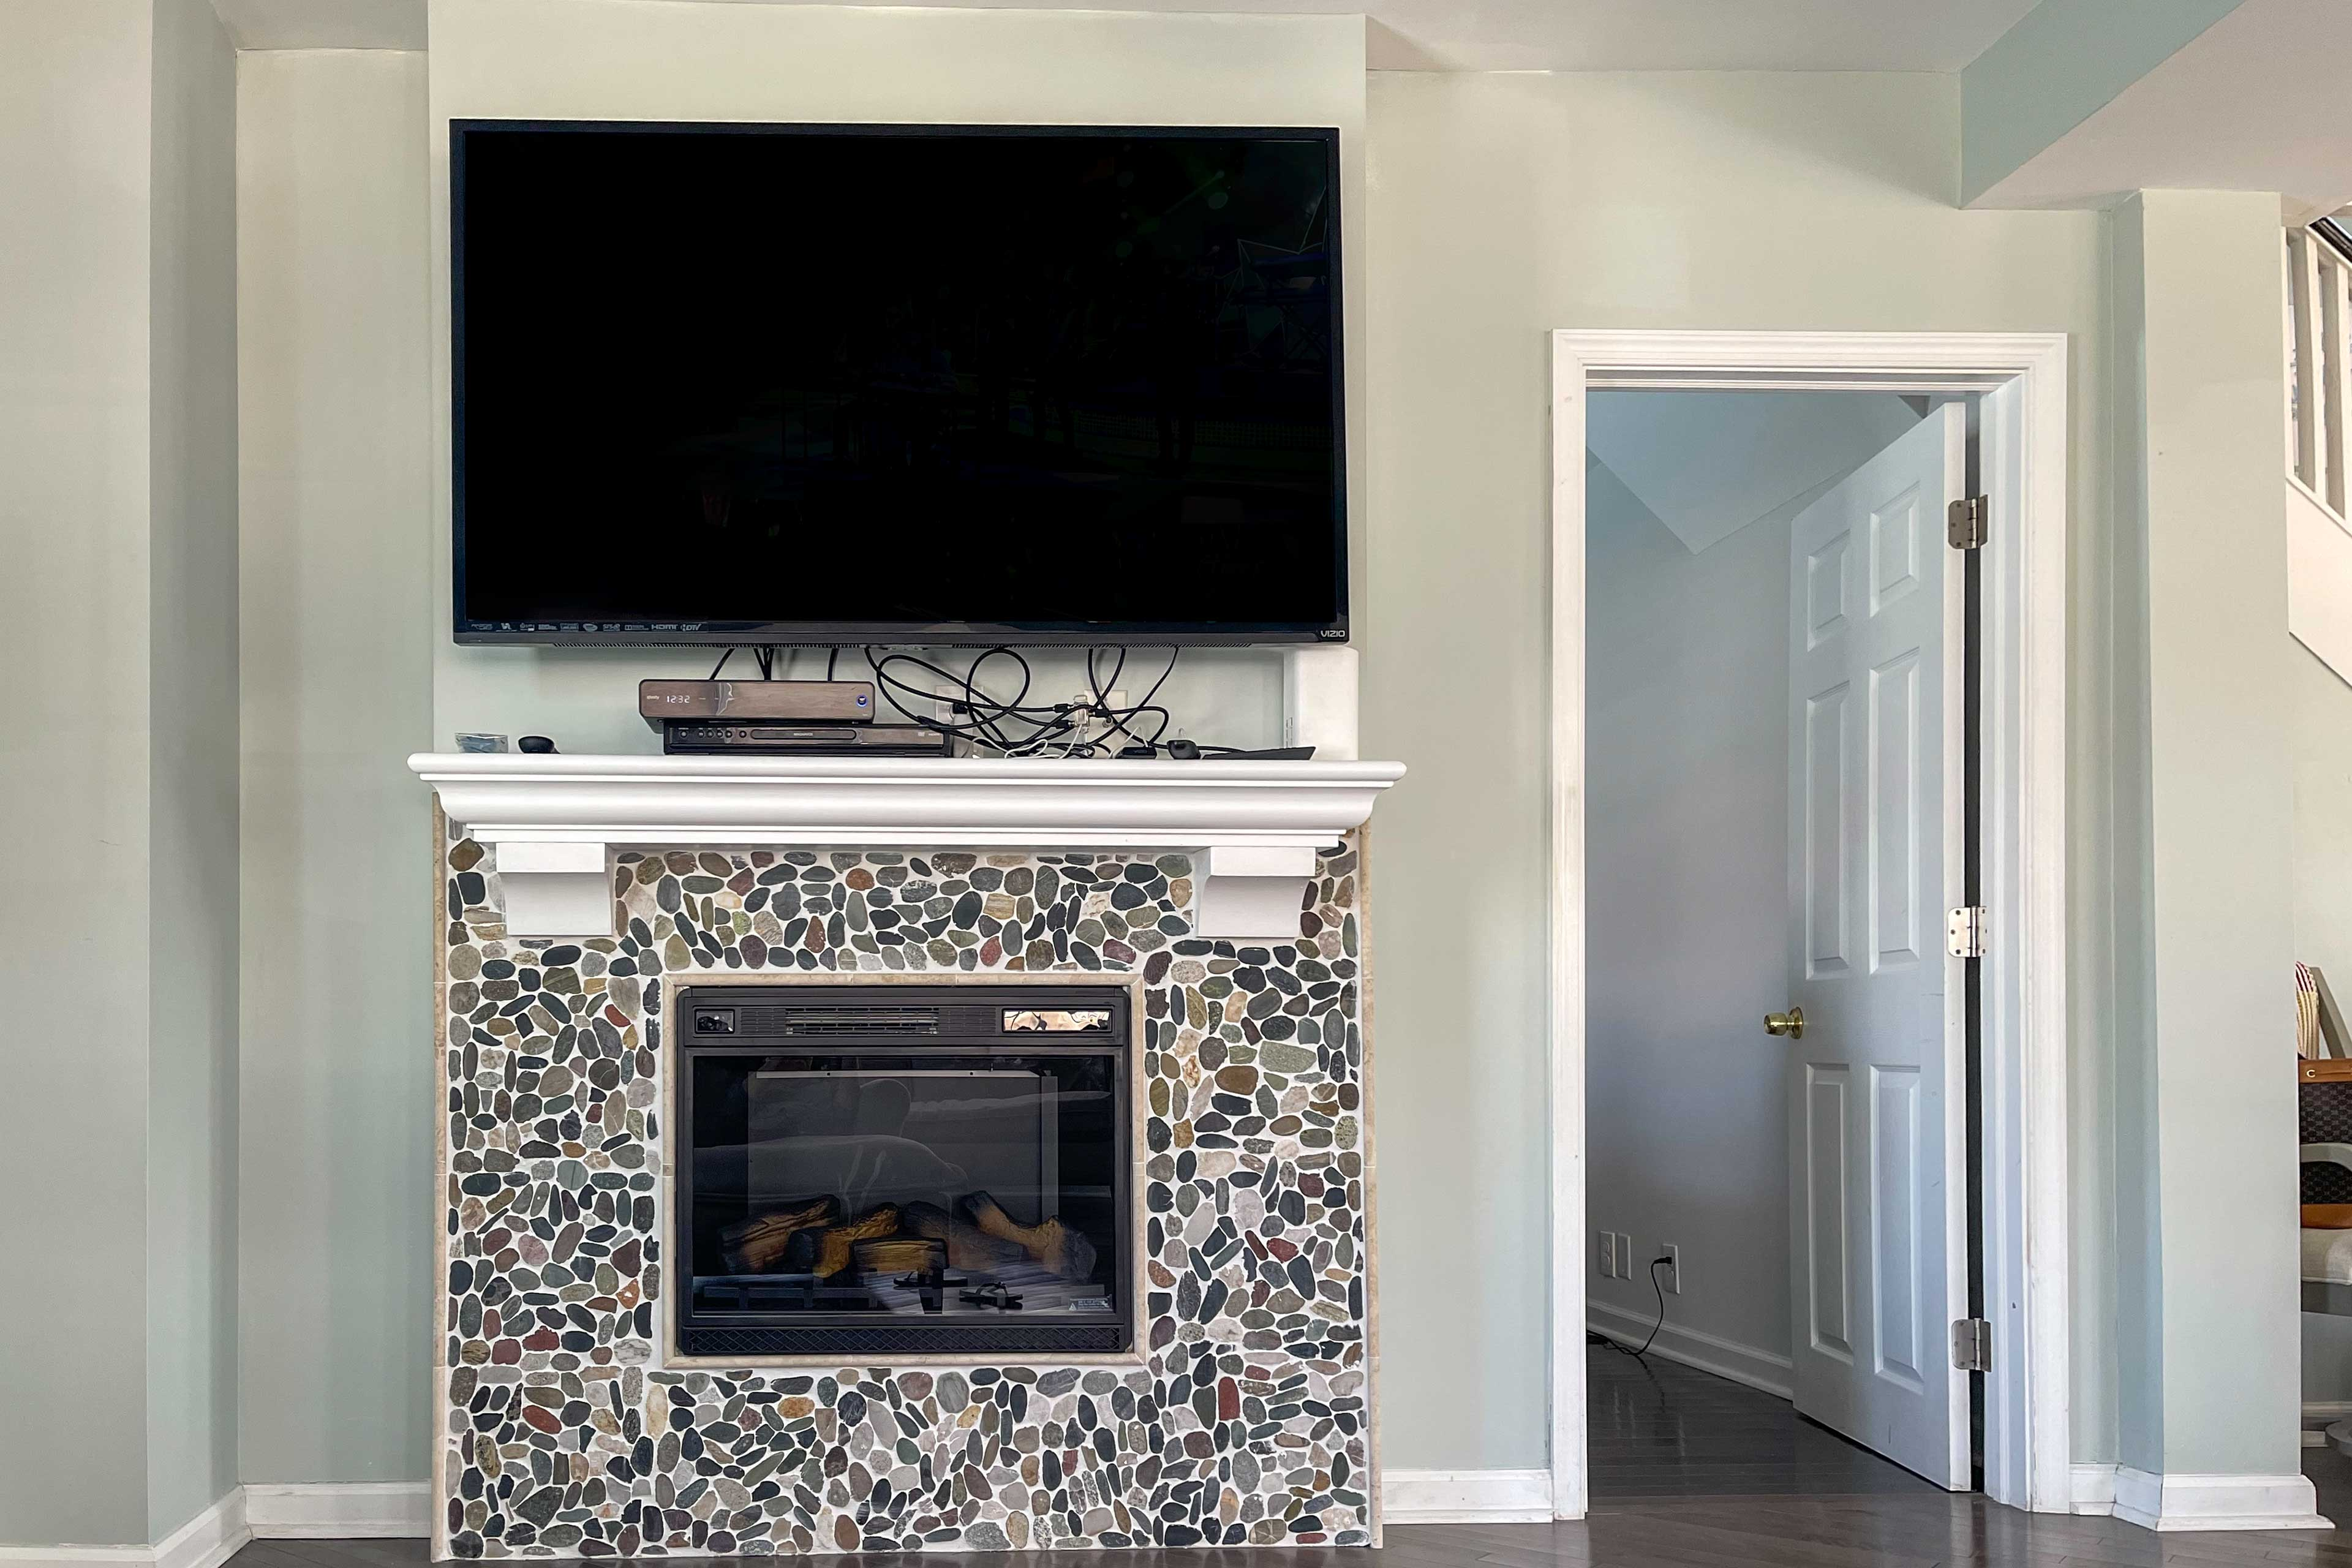 Flip on the TV or fireplace!